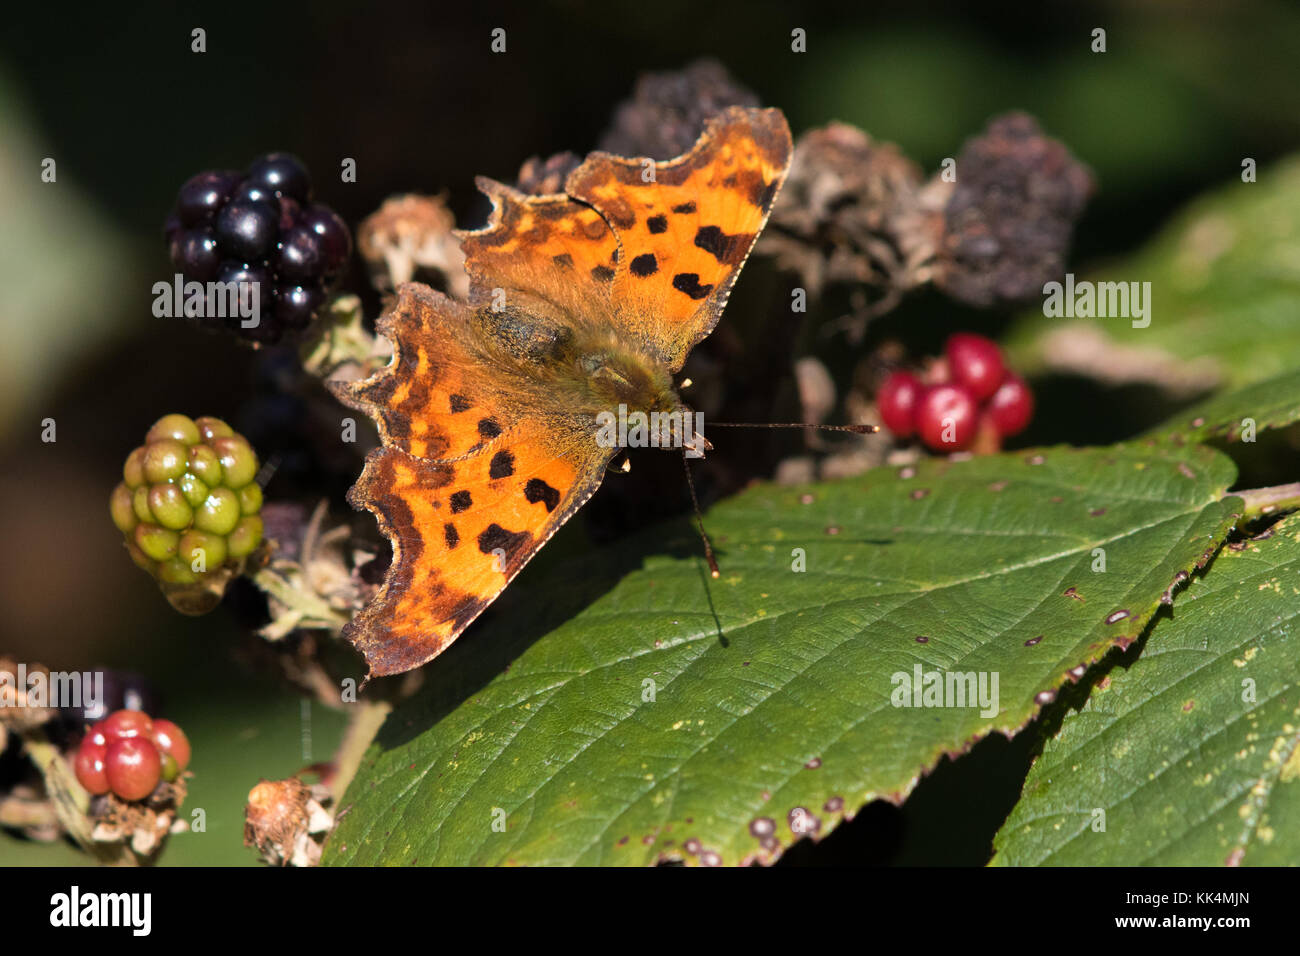 Comma (Polygonia c-album) butterfly resting on blackberries - Stock Image